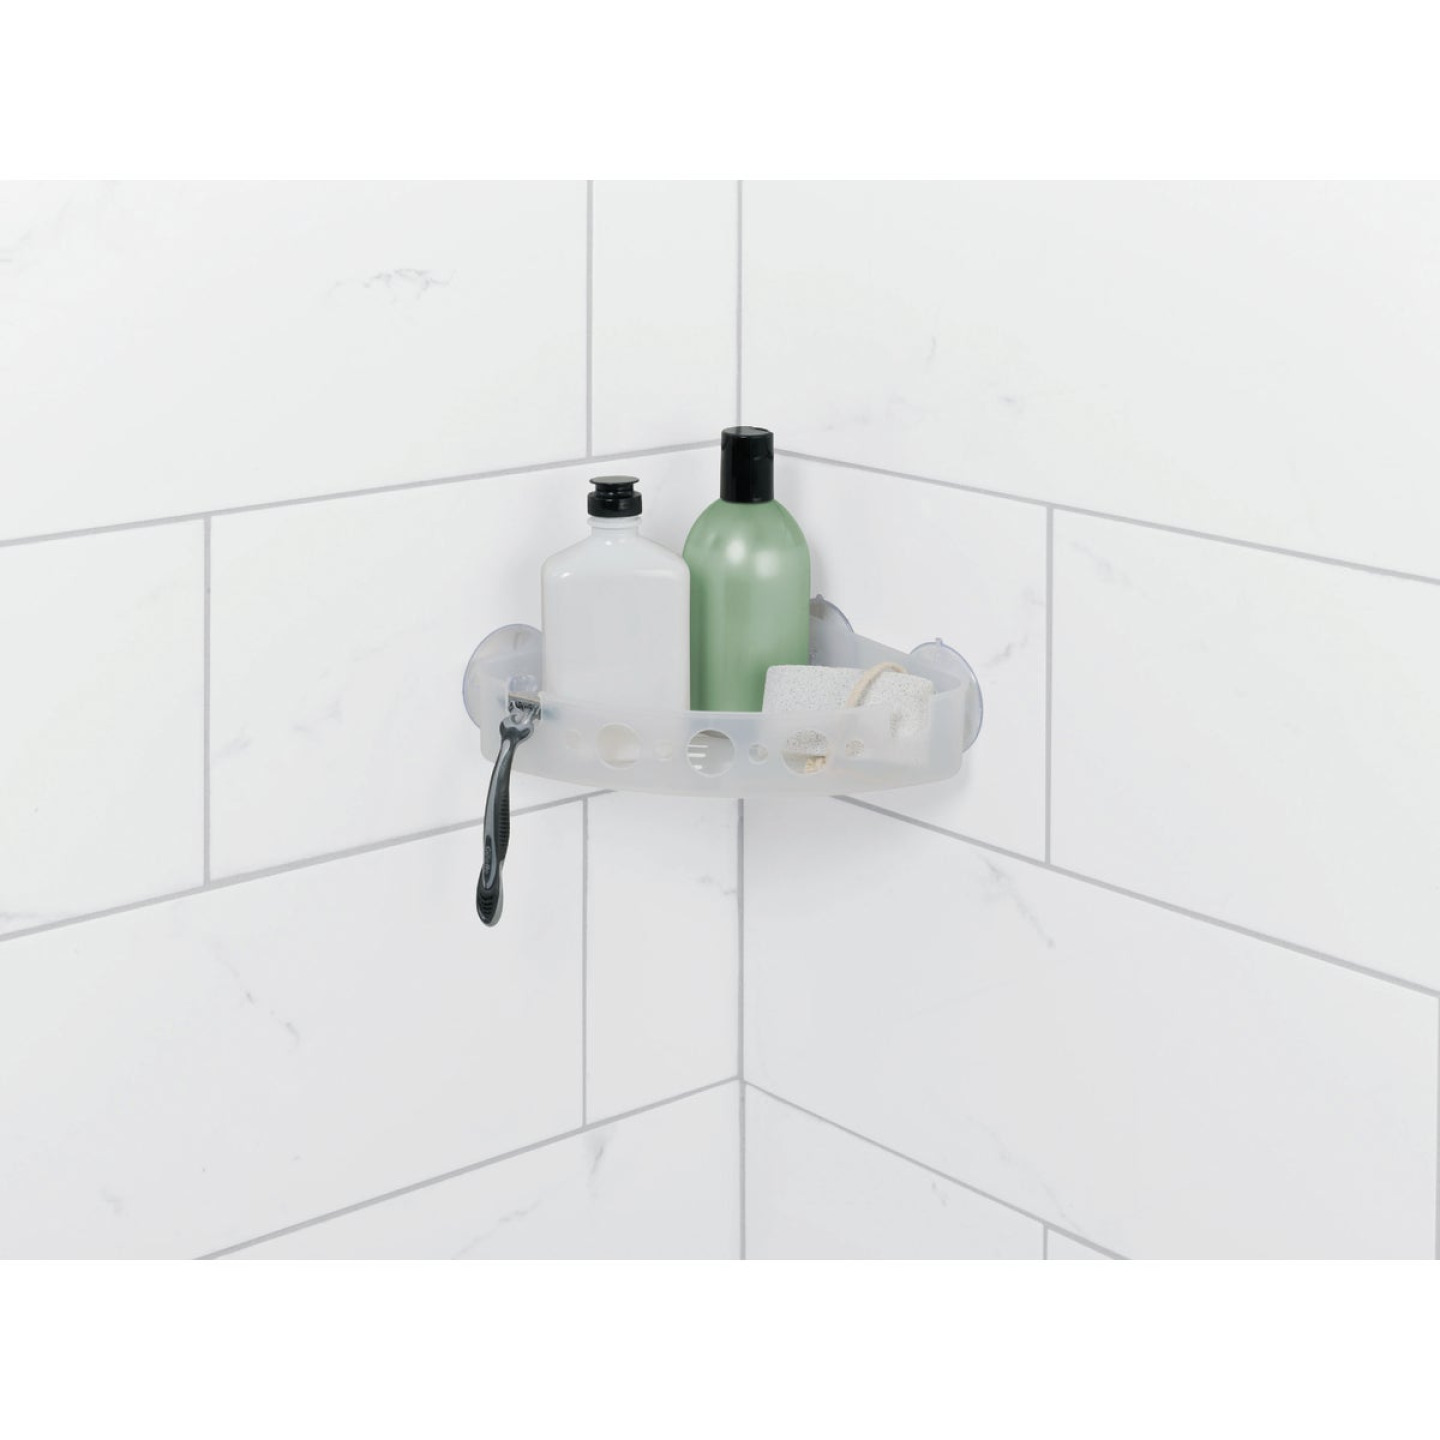 Zenna Home Frosted Finish Suction Corner Bathroom Shelf Image 1